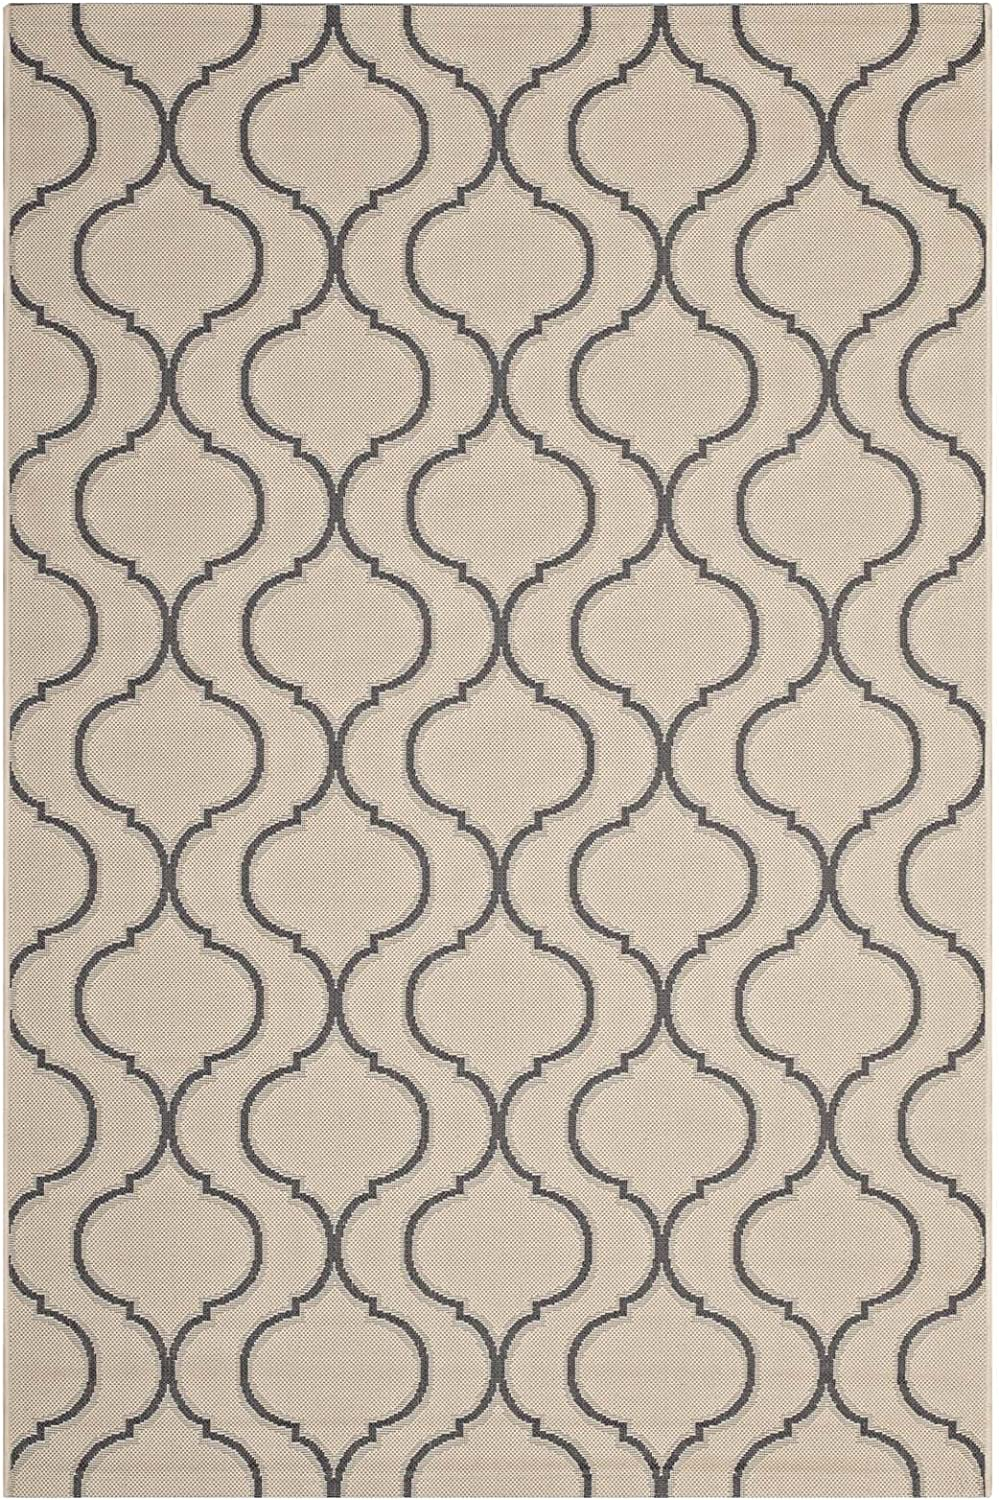 Modway Linza Wave Abstract Trellis 5x8 Indoor and Outdoor In Beige and Gray